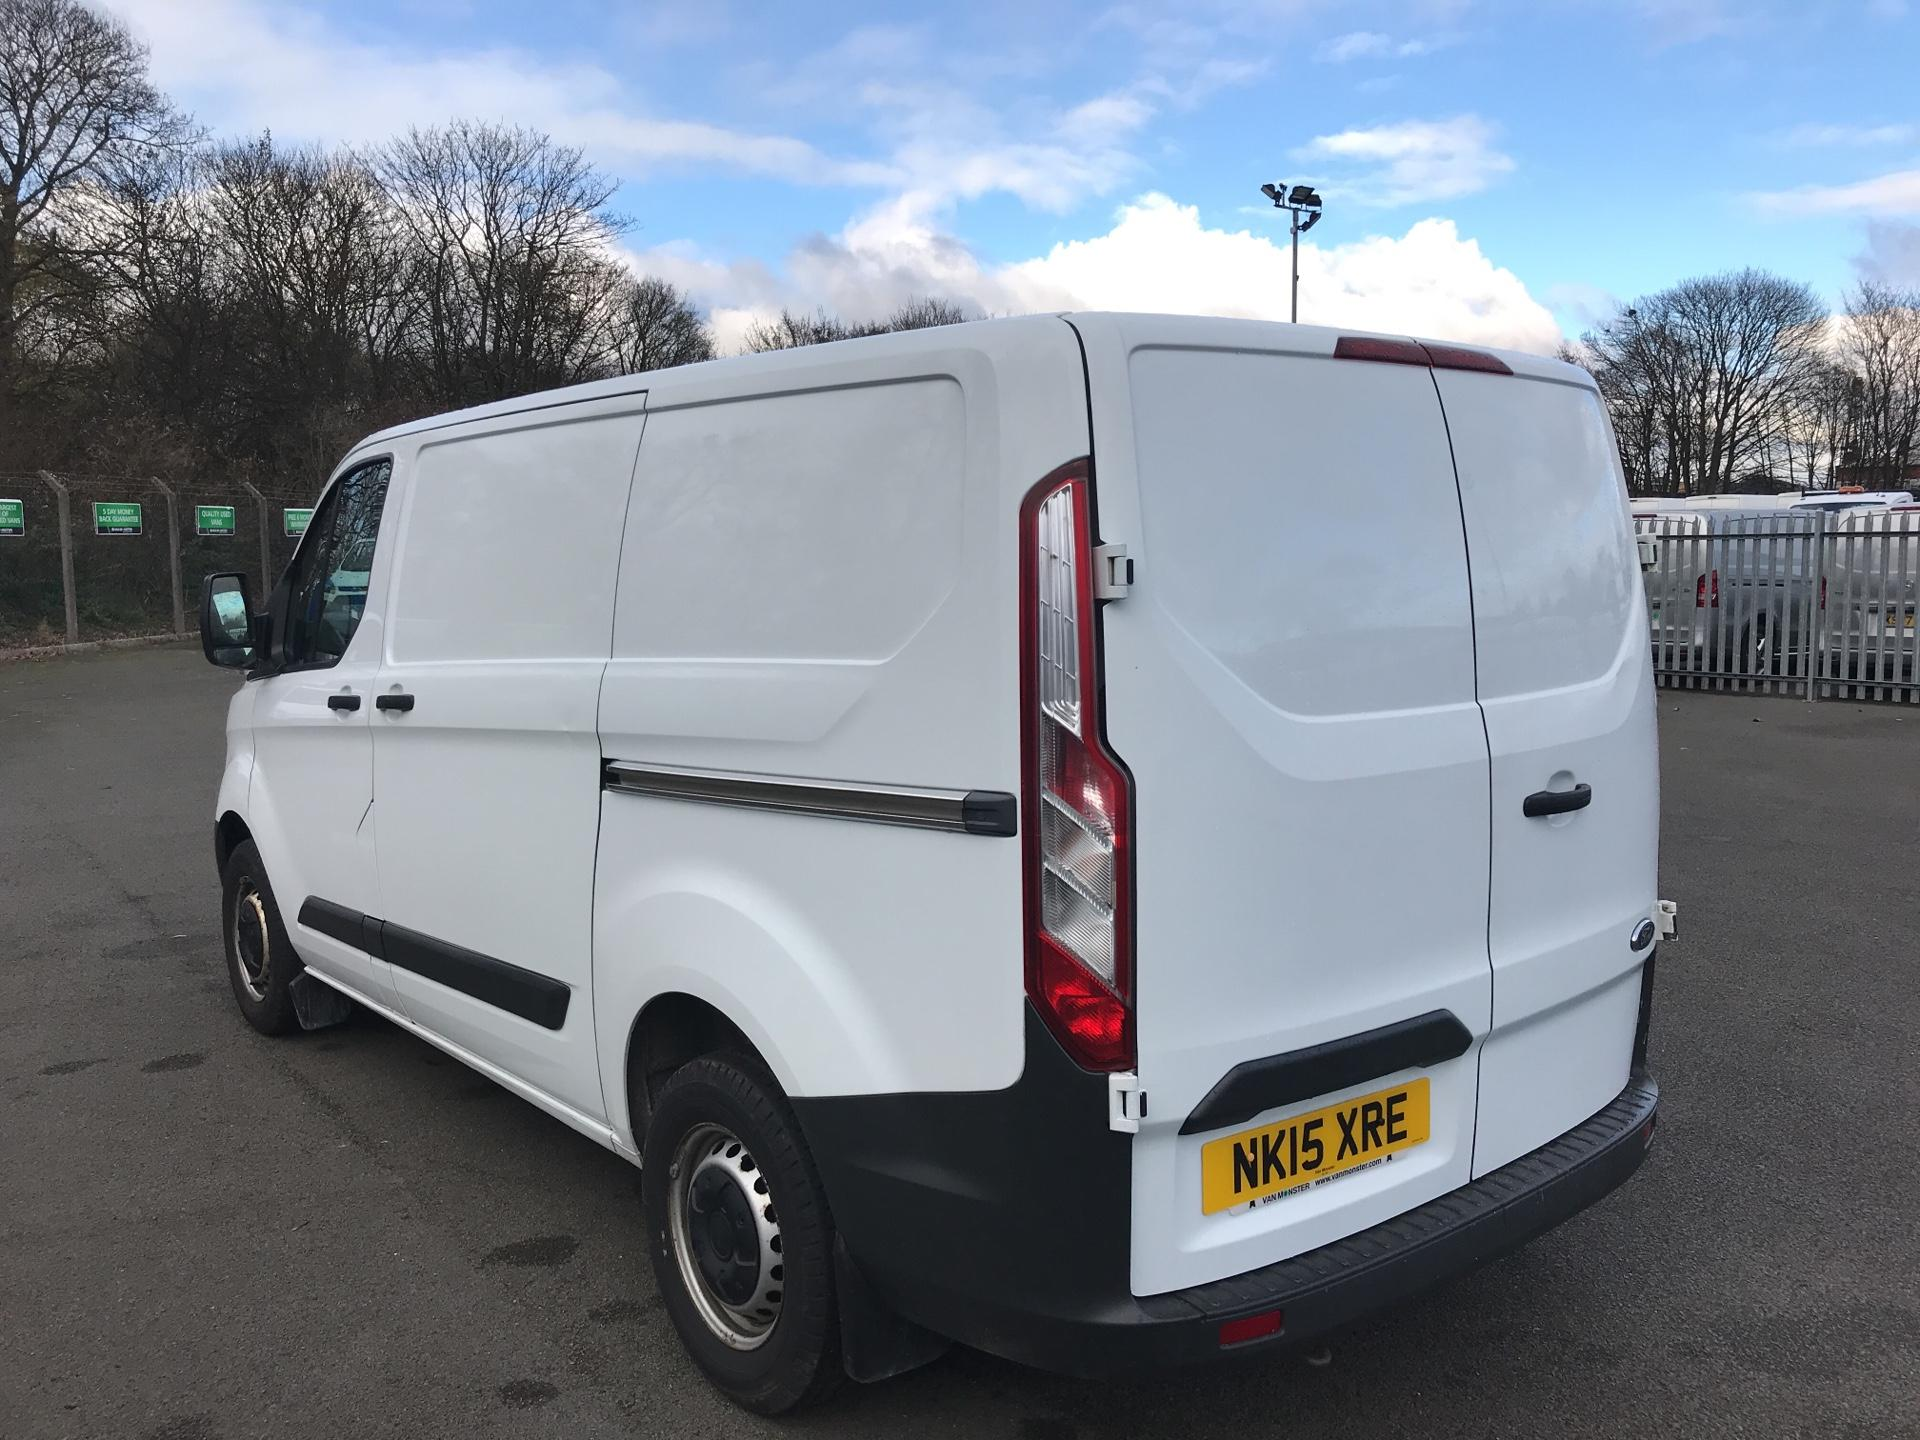 2015 Ford Transit Custom 290 L1 DIESEL FWD 2.2  TDCI 100PS LOW ROOF VAN EURO 5 *VALUE RANGE VEHICLE - CONDITION REFLECTED IN PRICE* (NK15XRE) Image 5